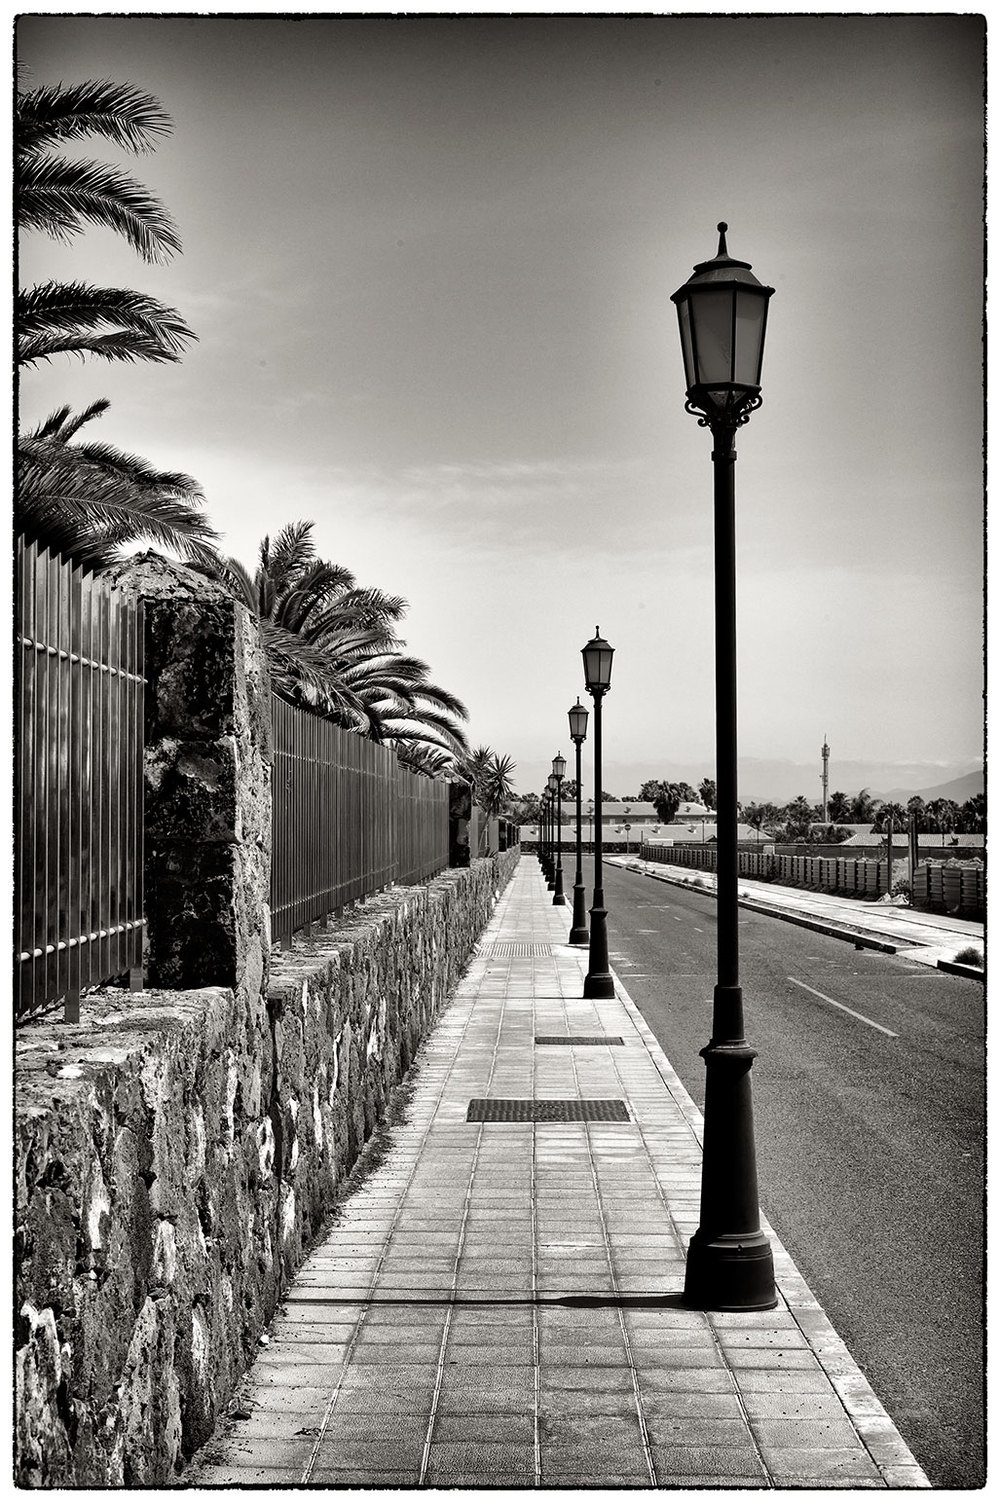 Lamp posts all in a row as far as the eye can see, Corralejo.